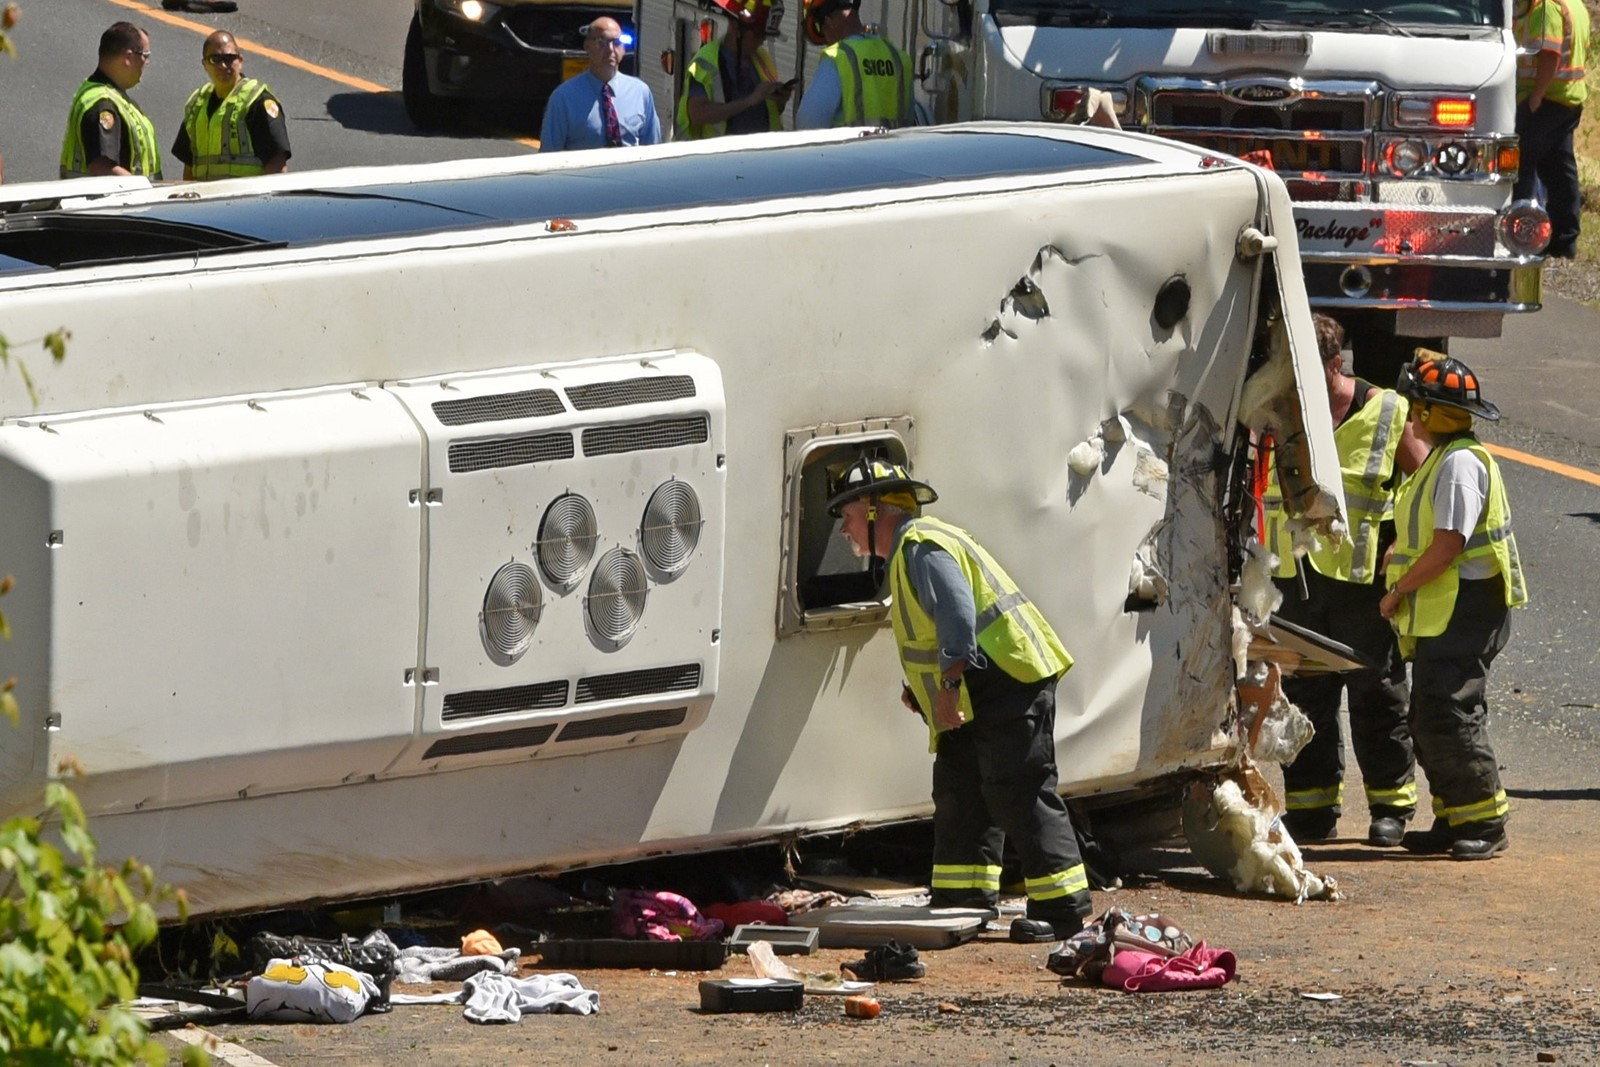 Trip to D C  ends in Harford crash - Baltimore Sun